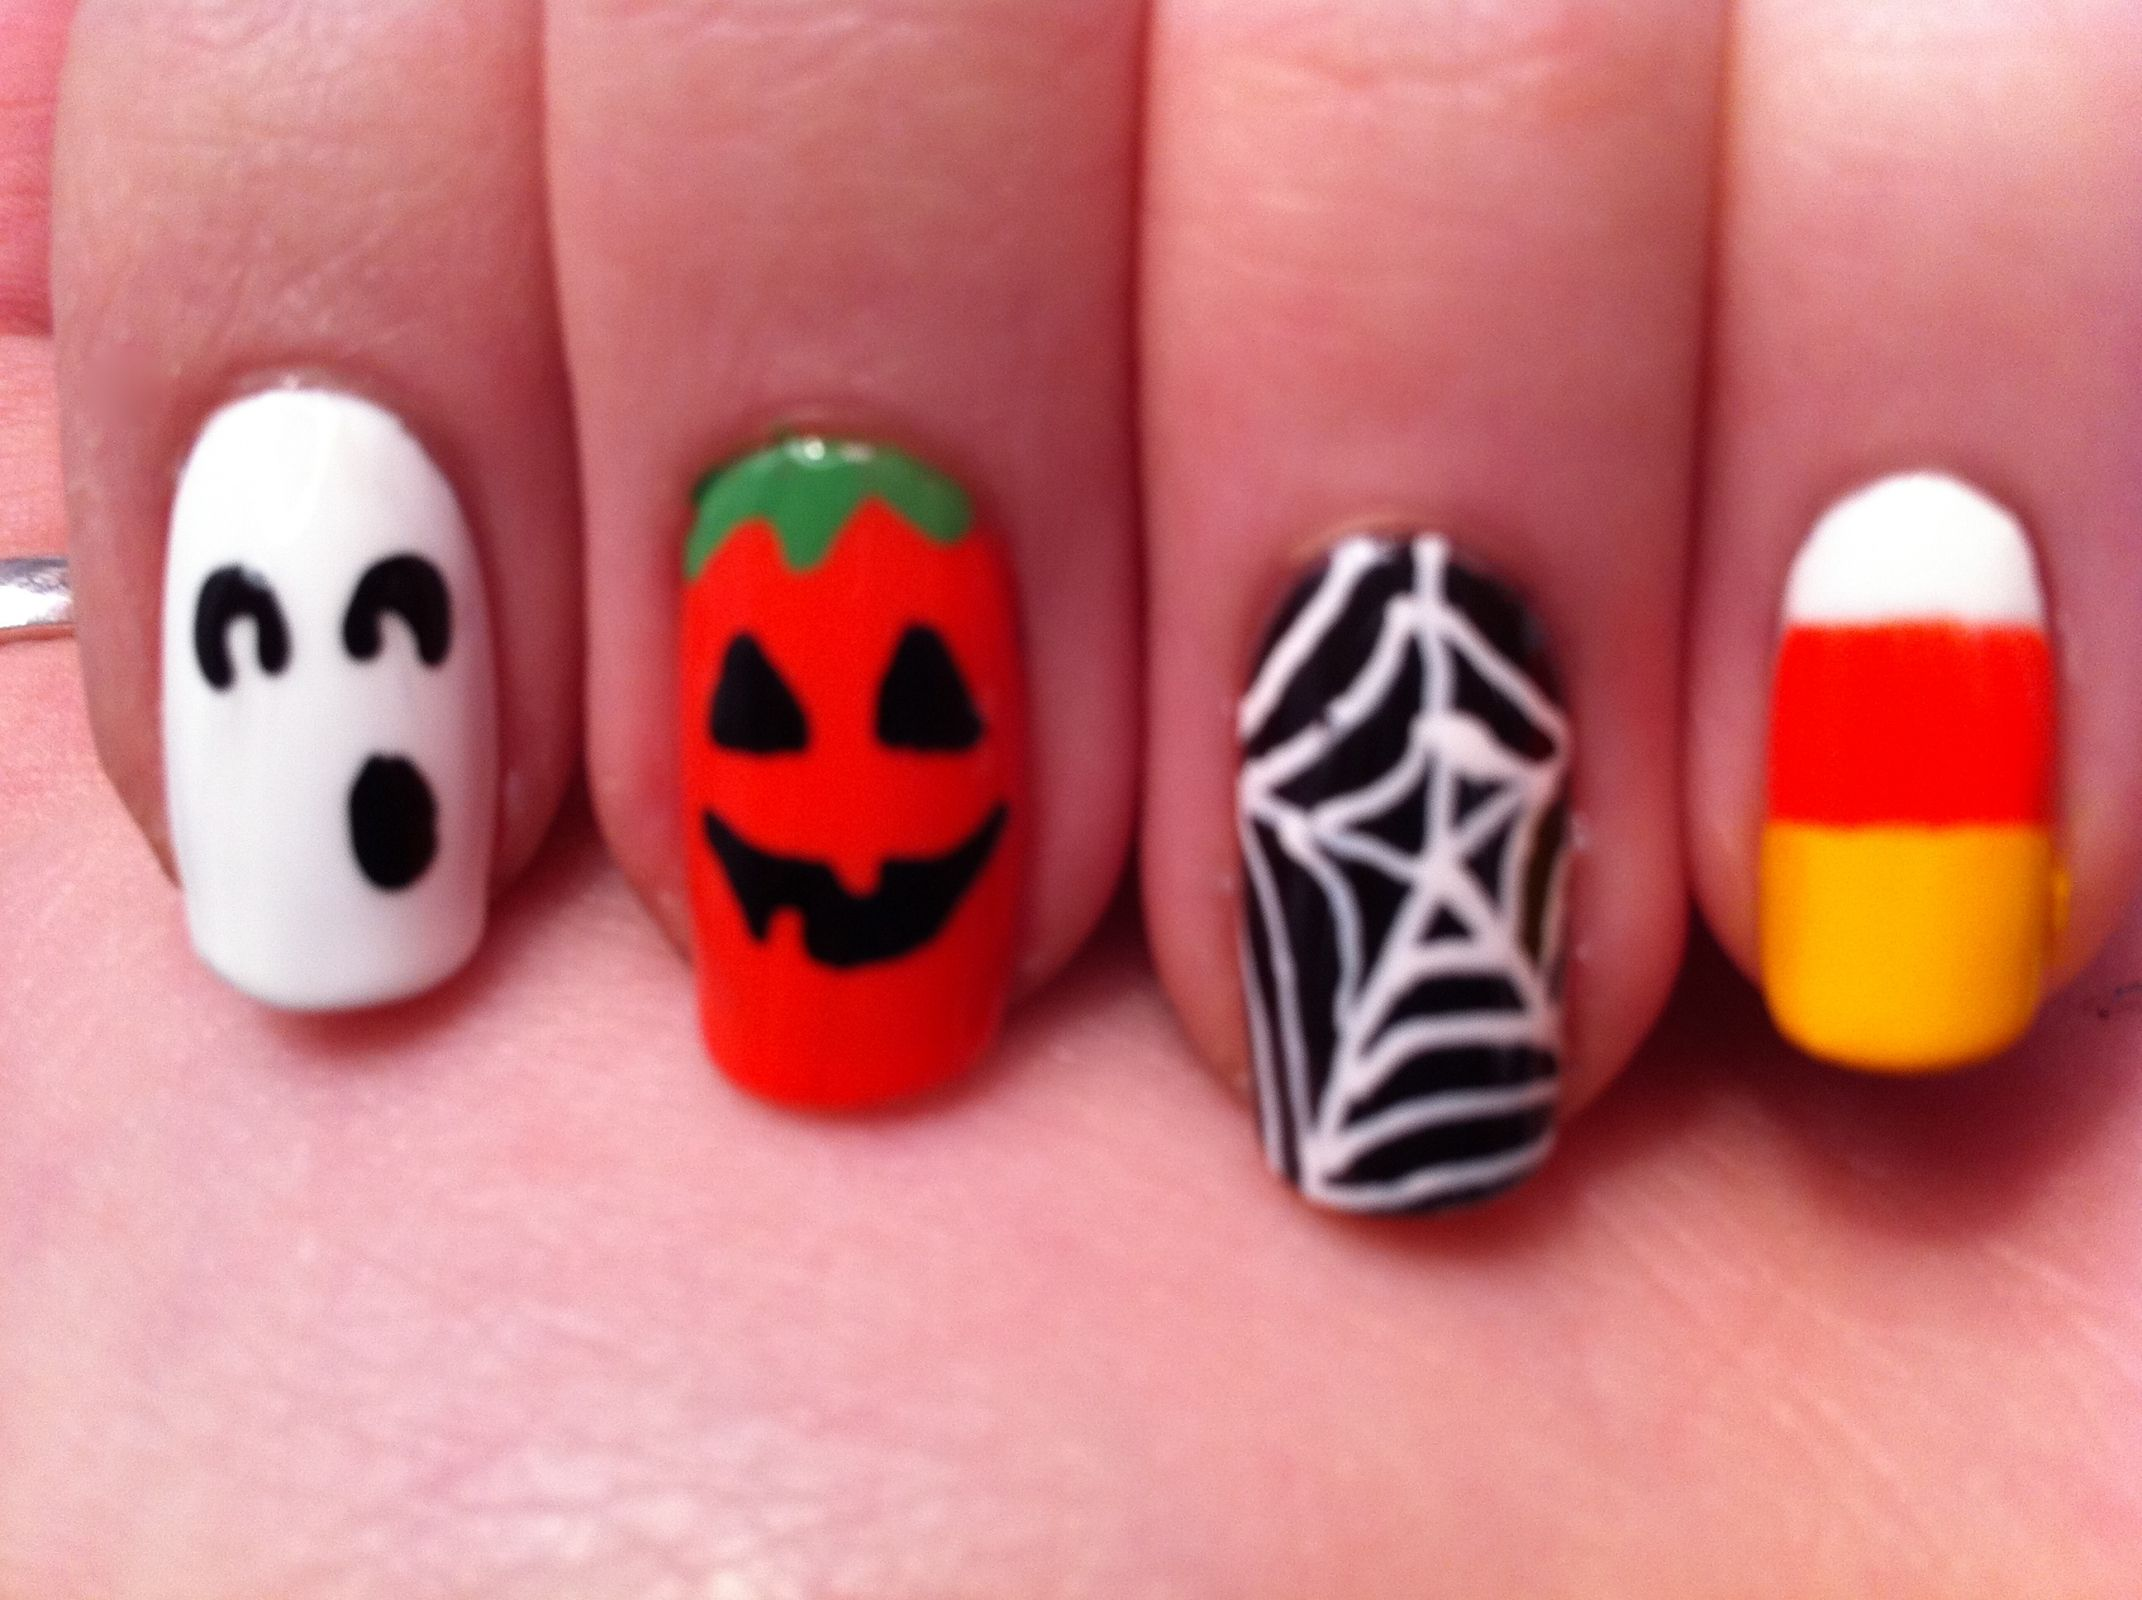 78+ images about halloween toenail & nail designs on Pinterest ...